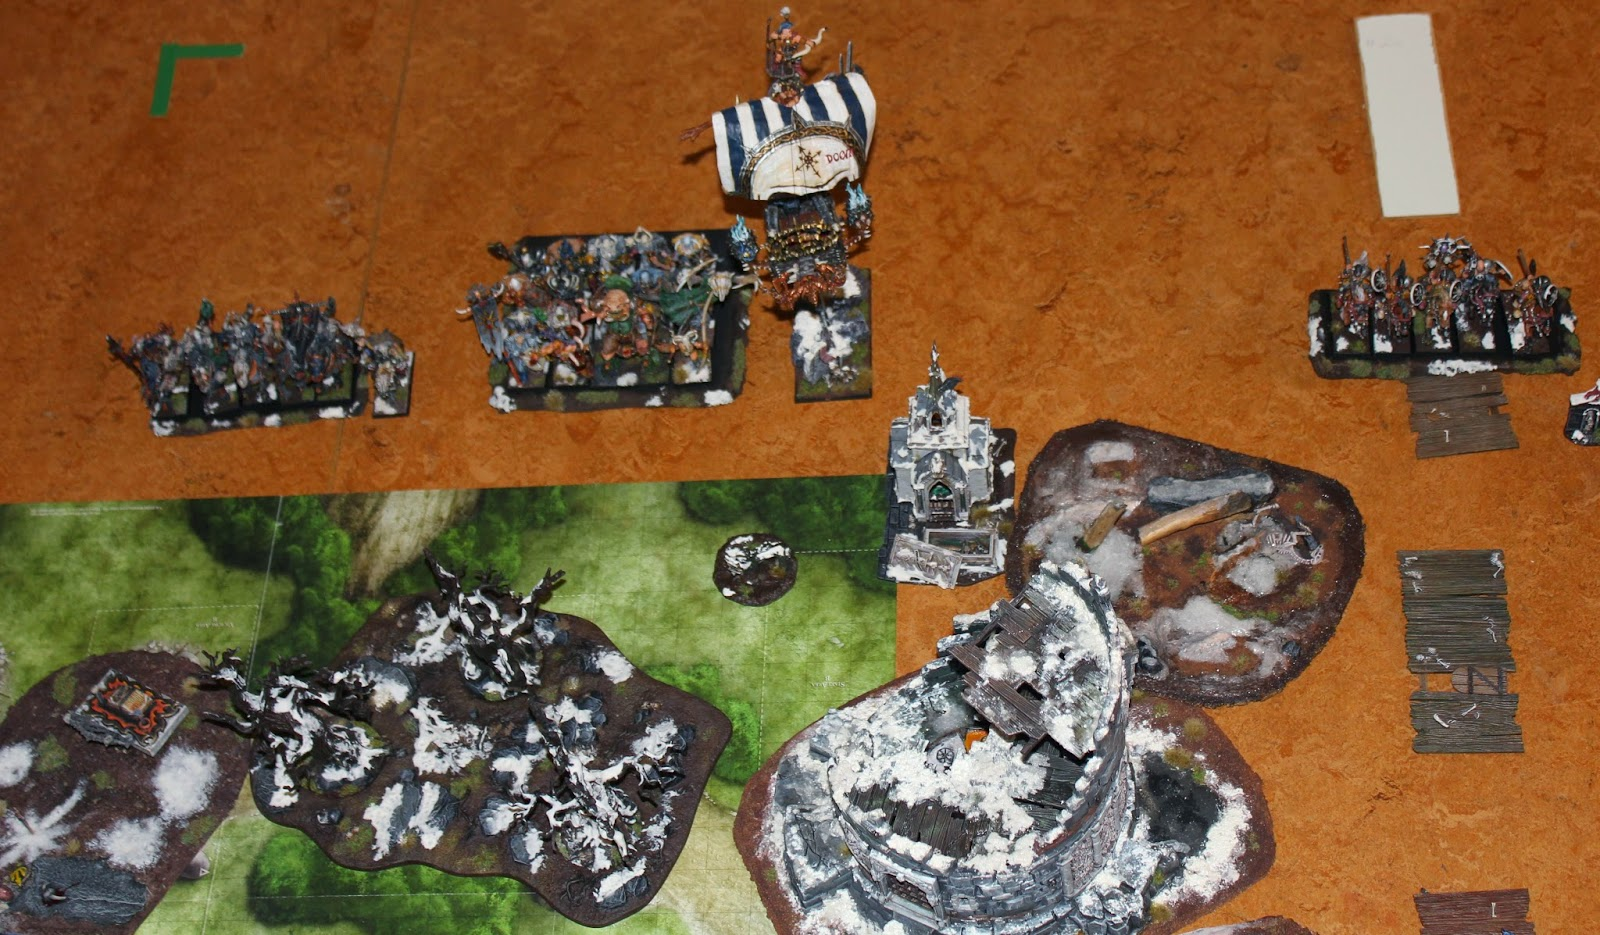 A Warhammer Fantasy Battle Report between Dark Elves and Warriors of Chaos.